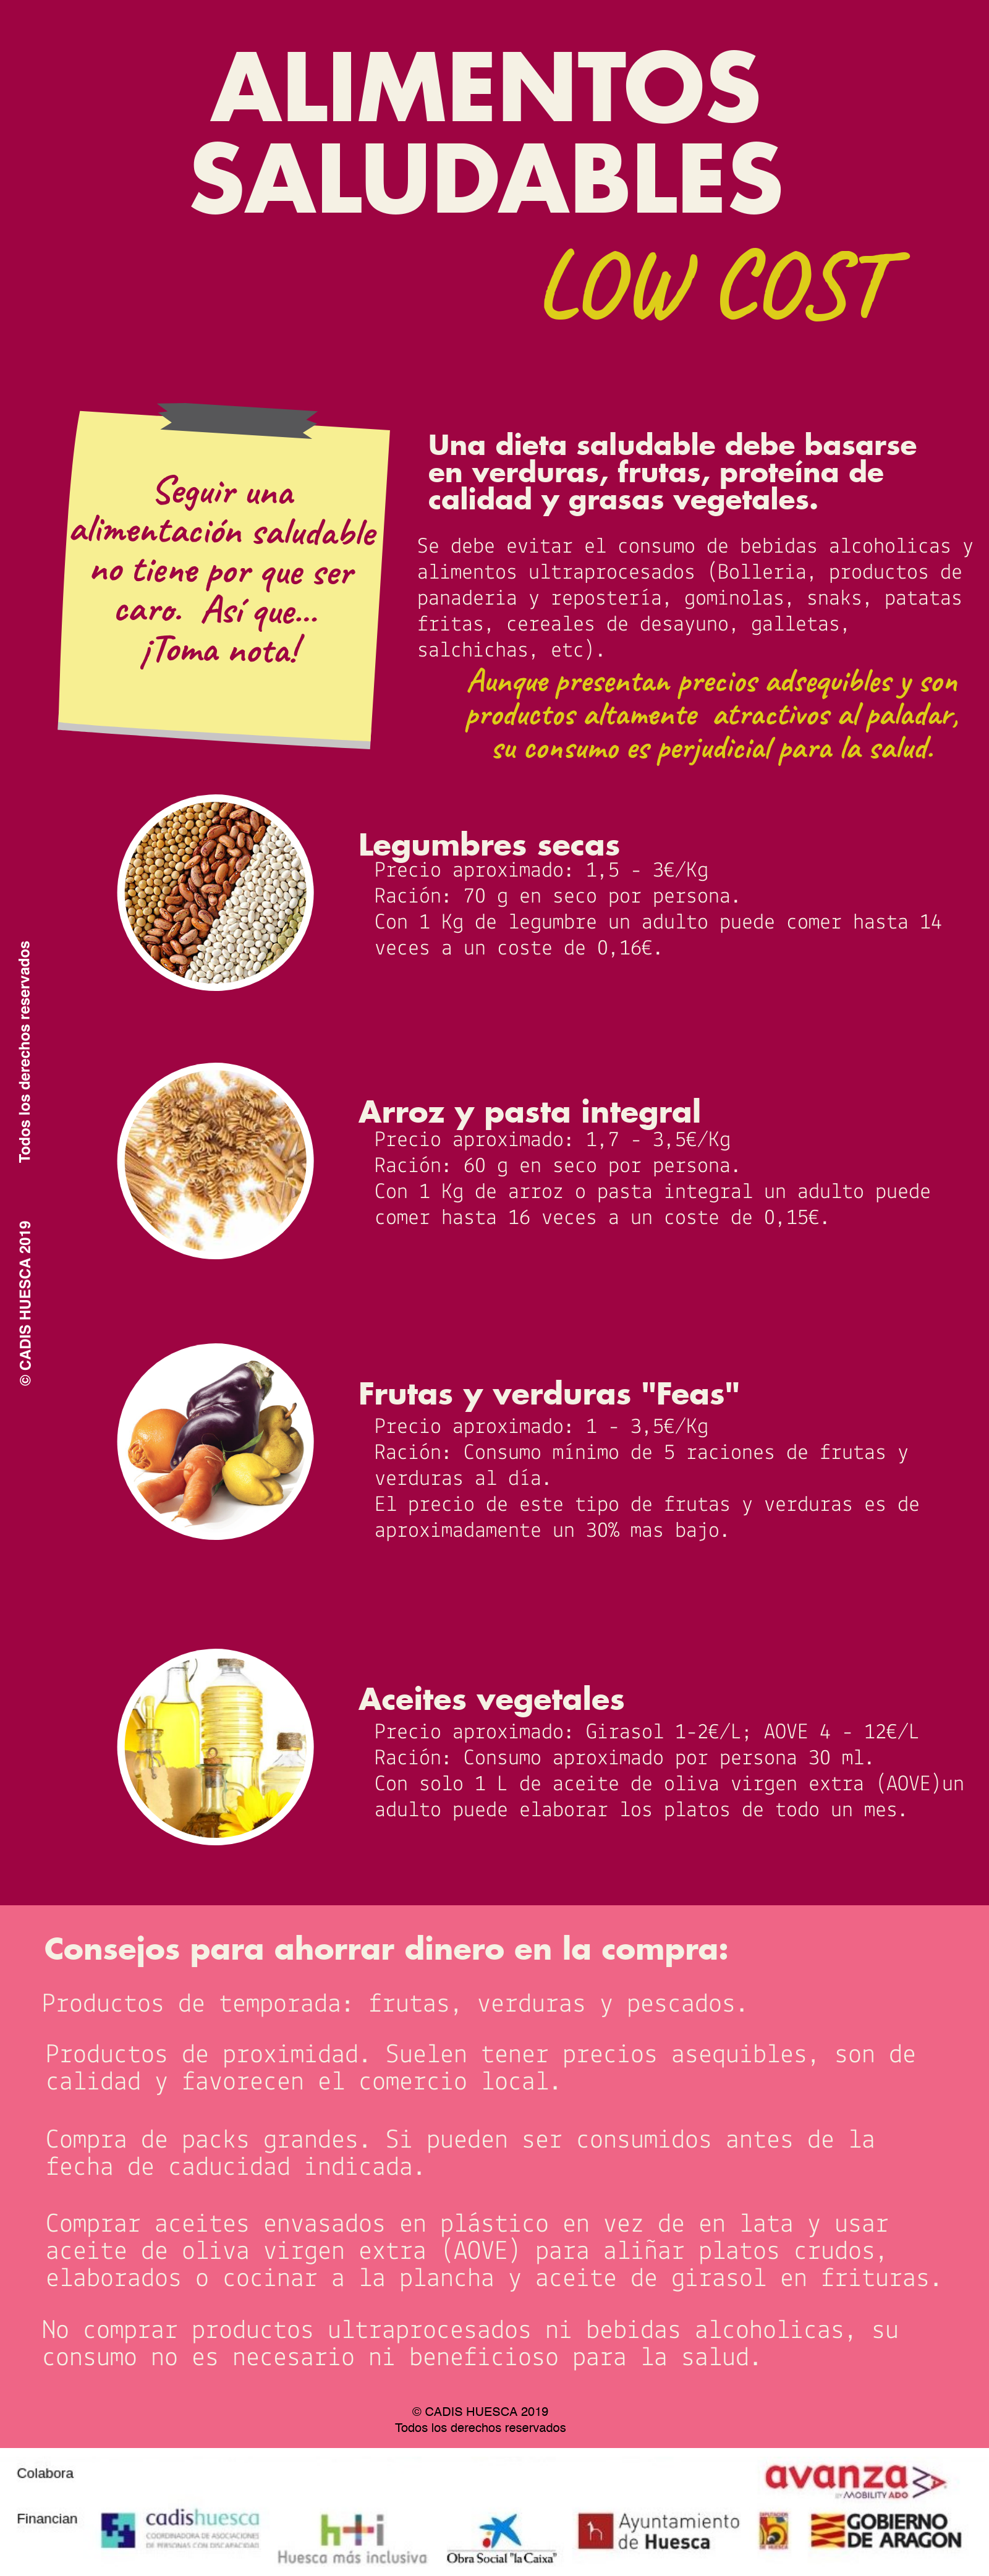 6. Alimentos saludables Low cost